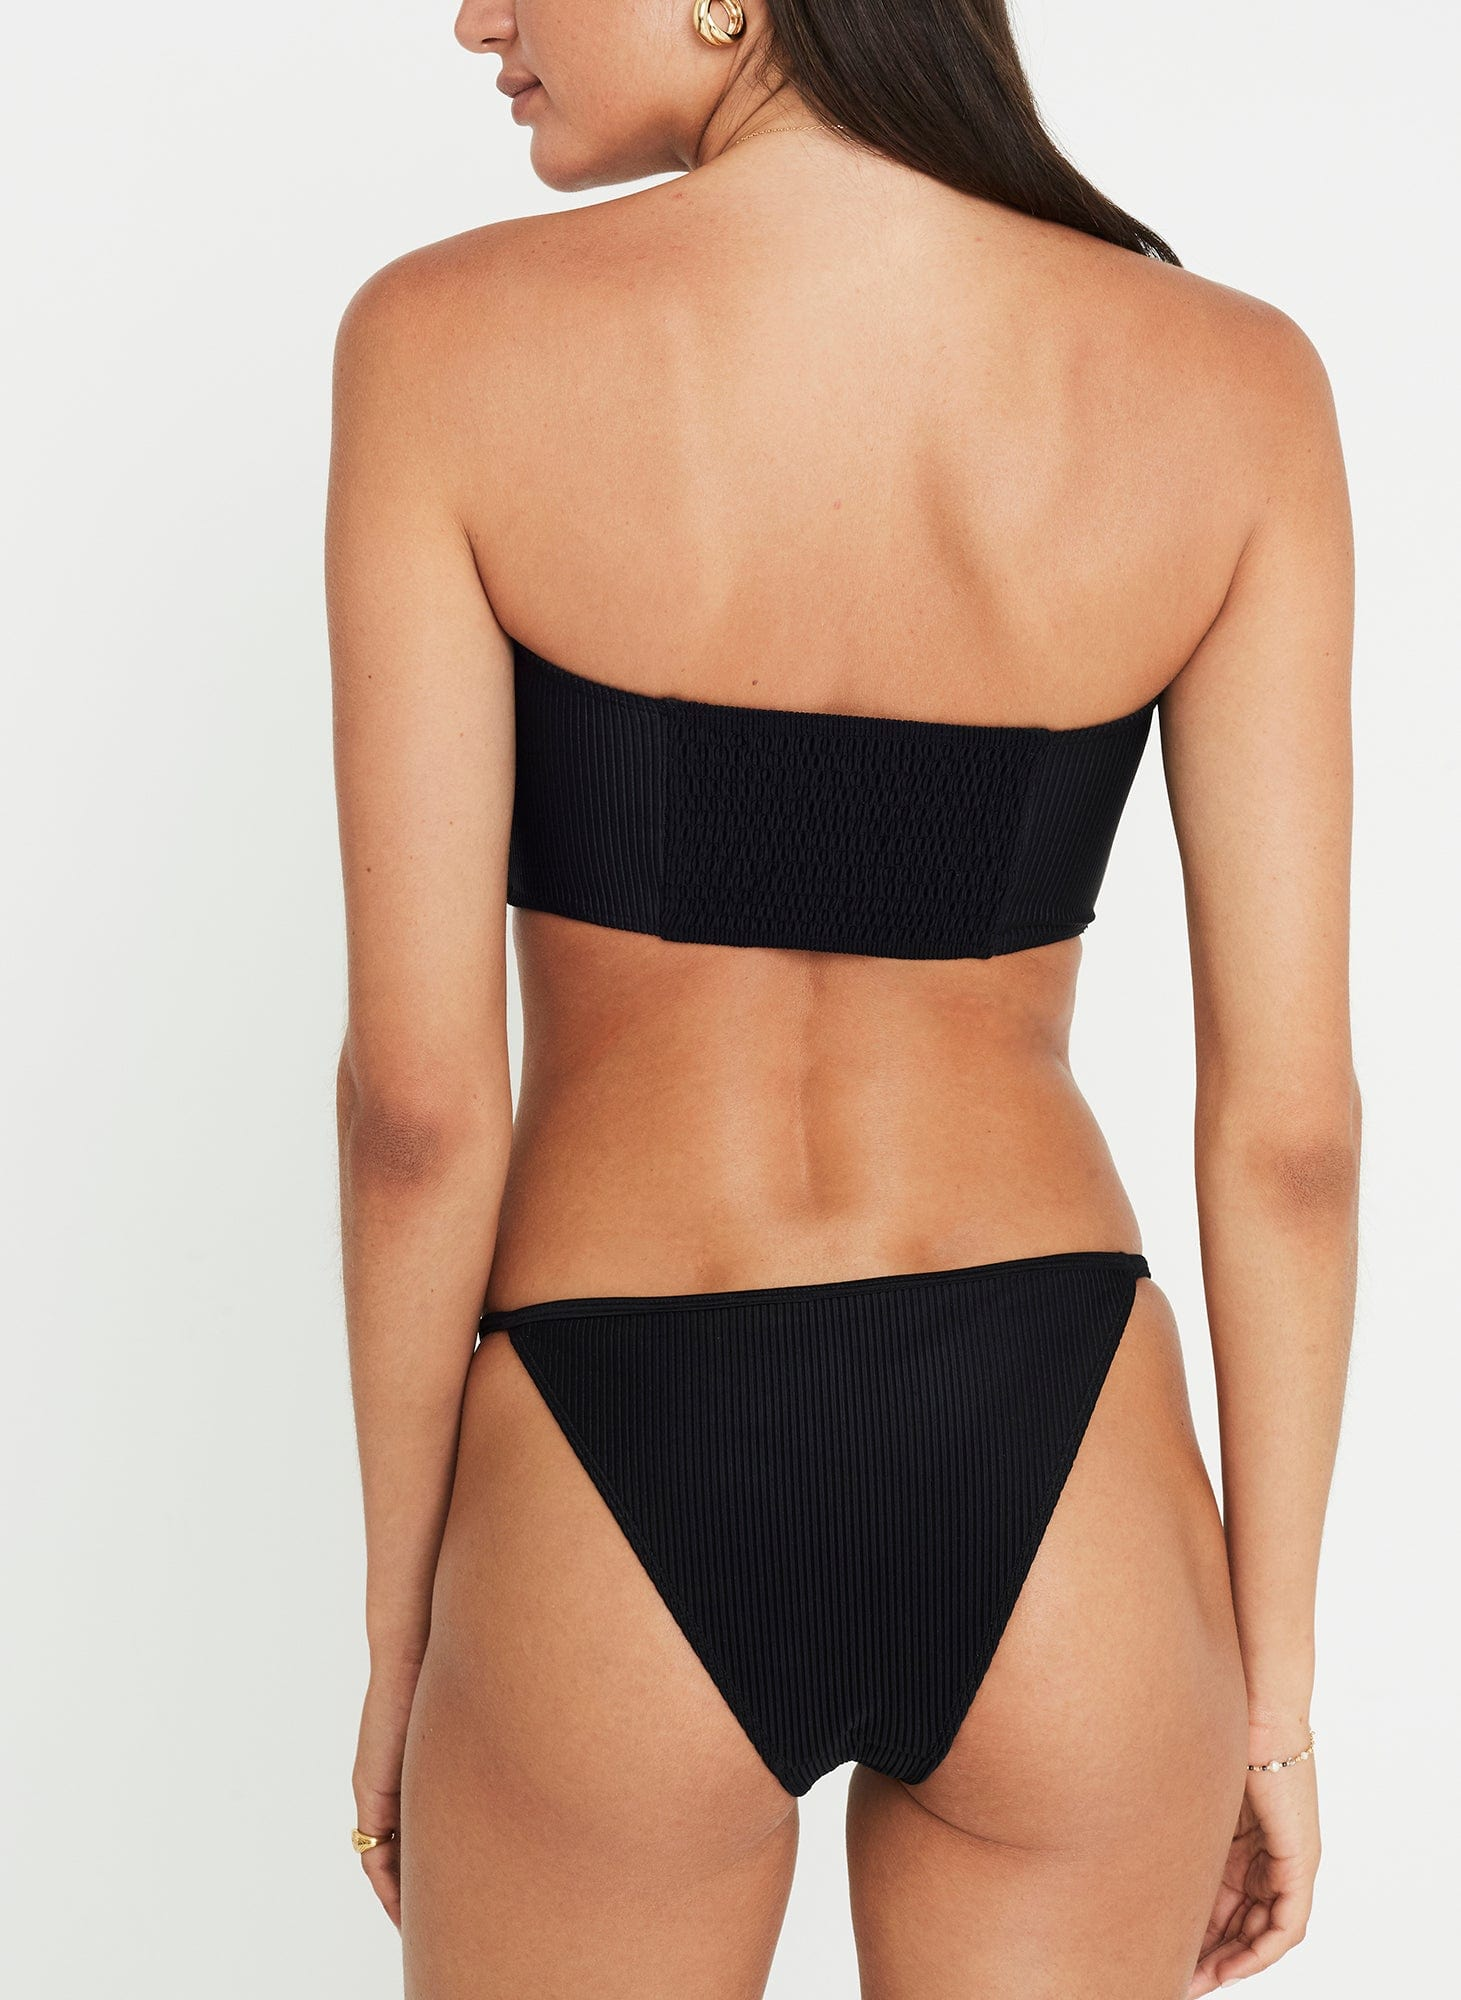 Steffy Bikini Plain Black Ribbing